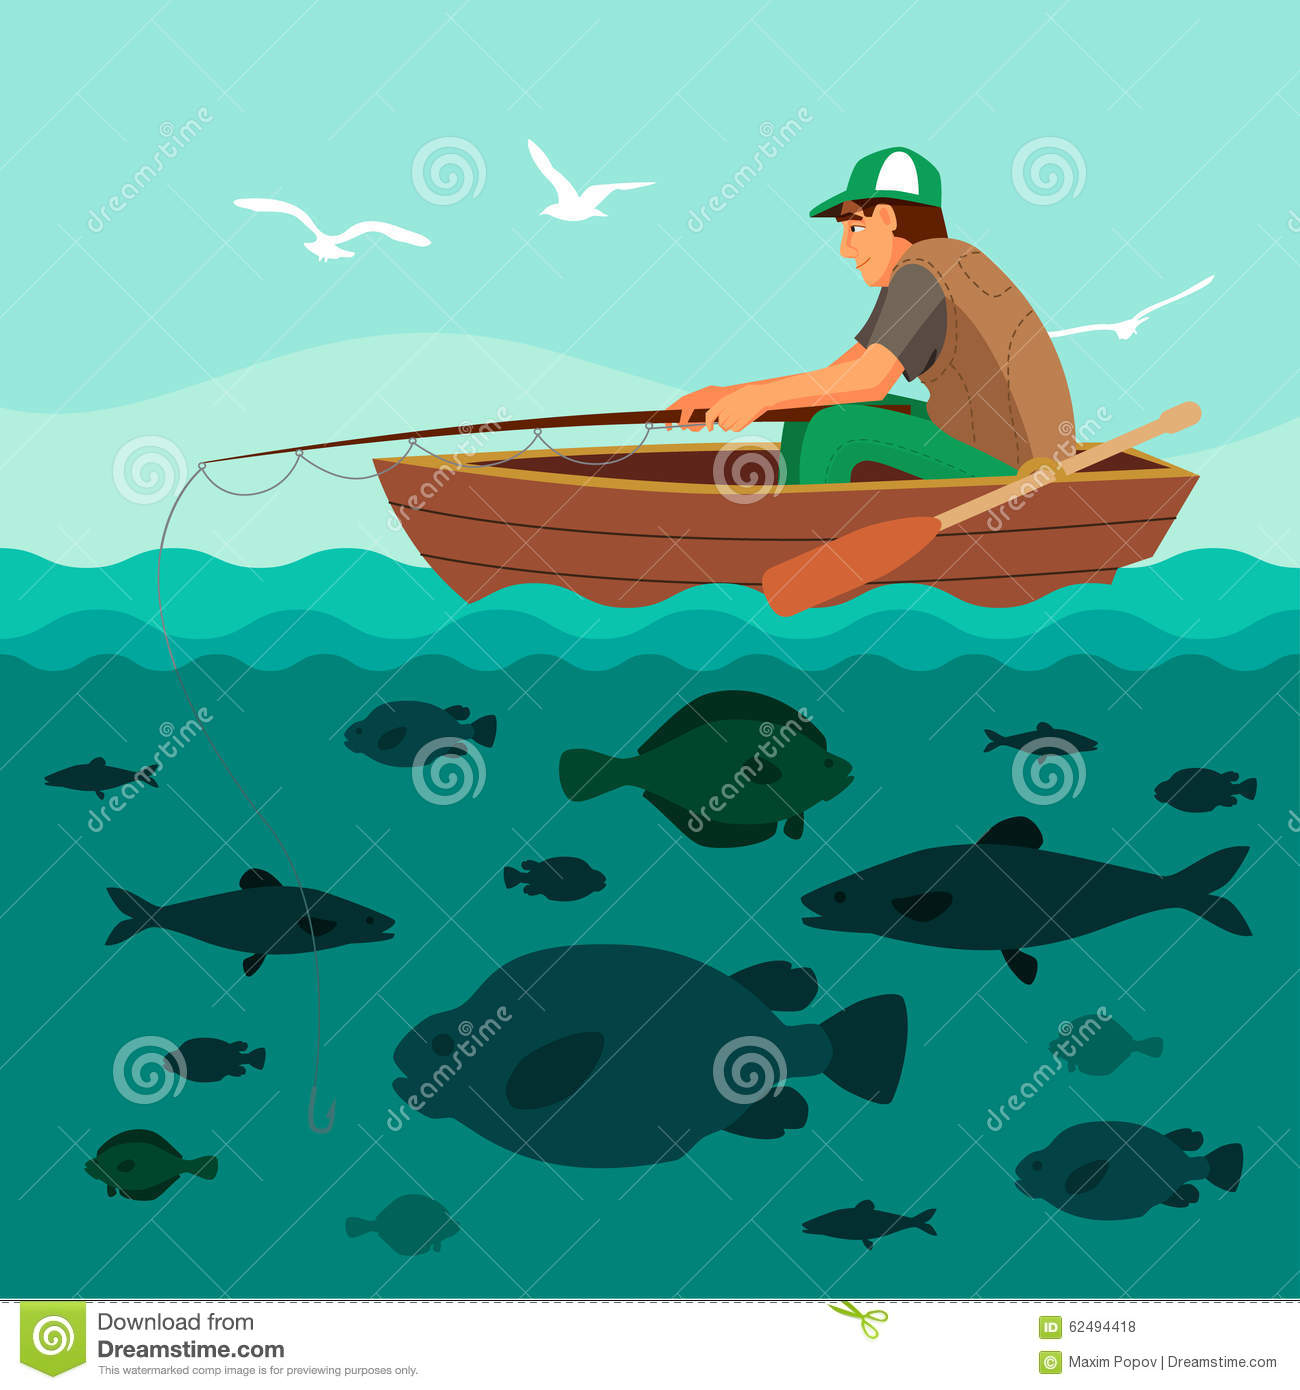 Man fishing on the boat lots of fish stock vector for Lot of fish